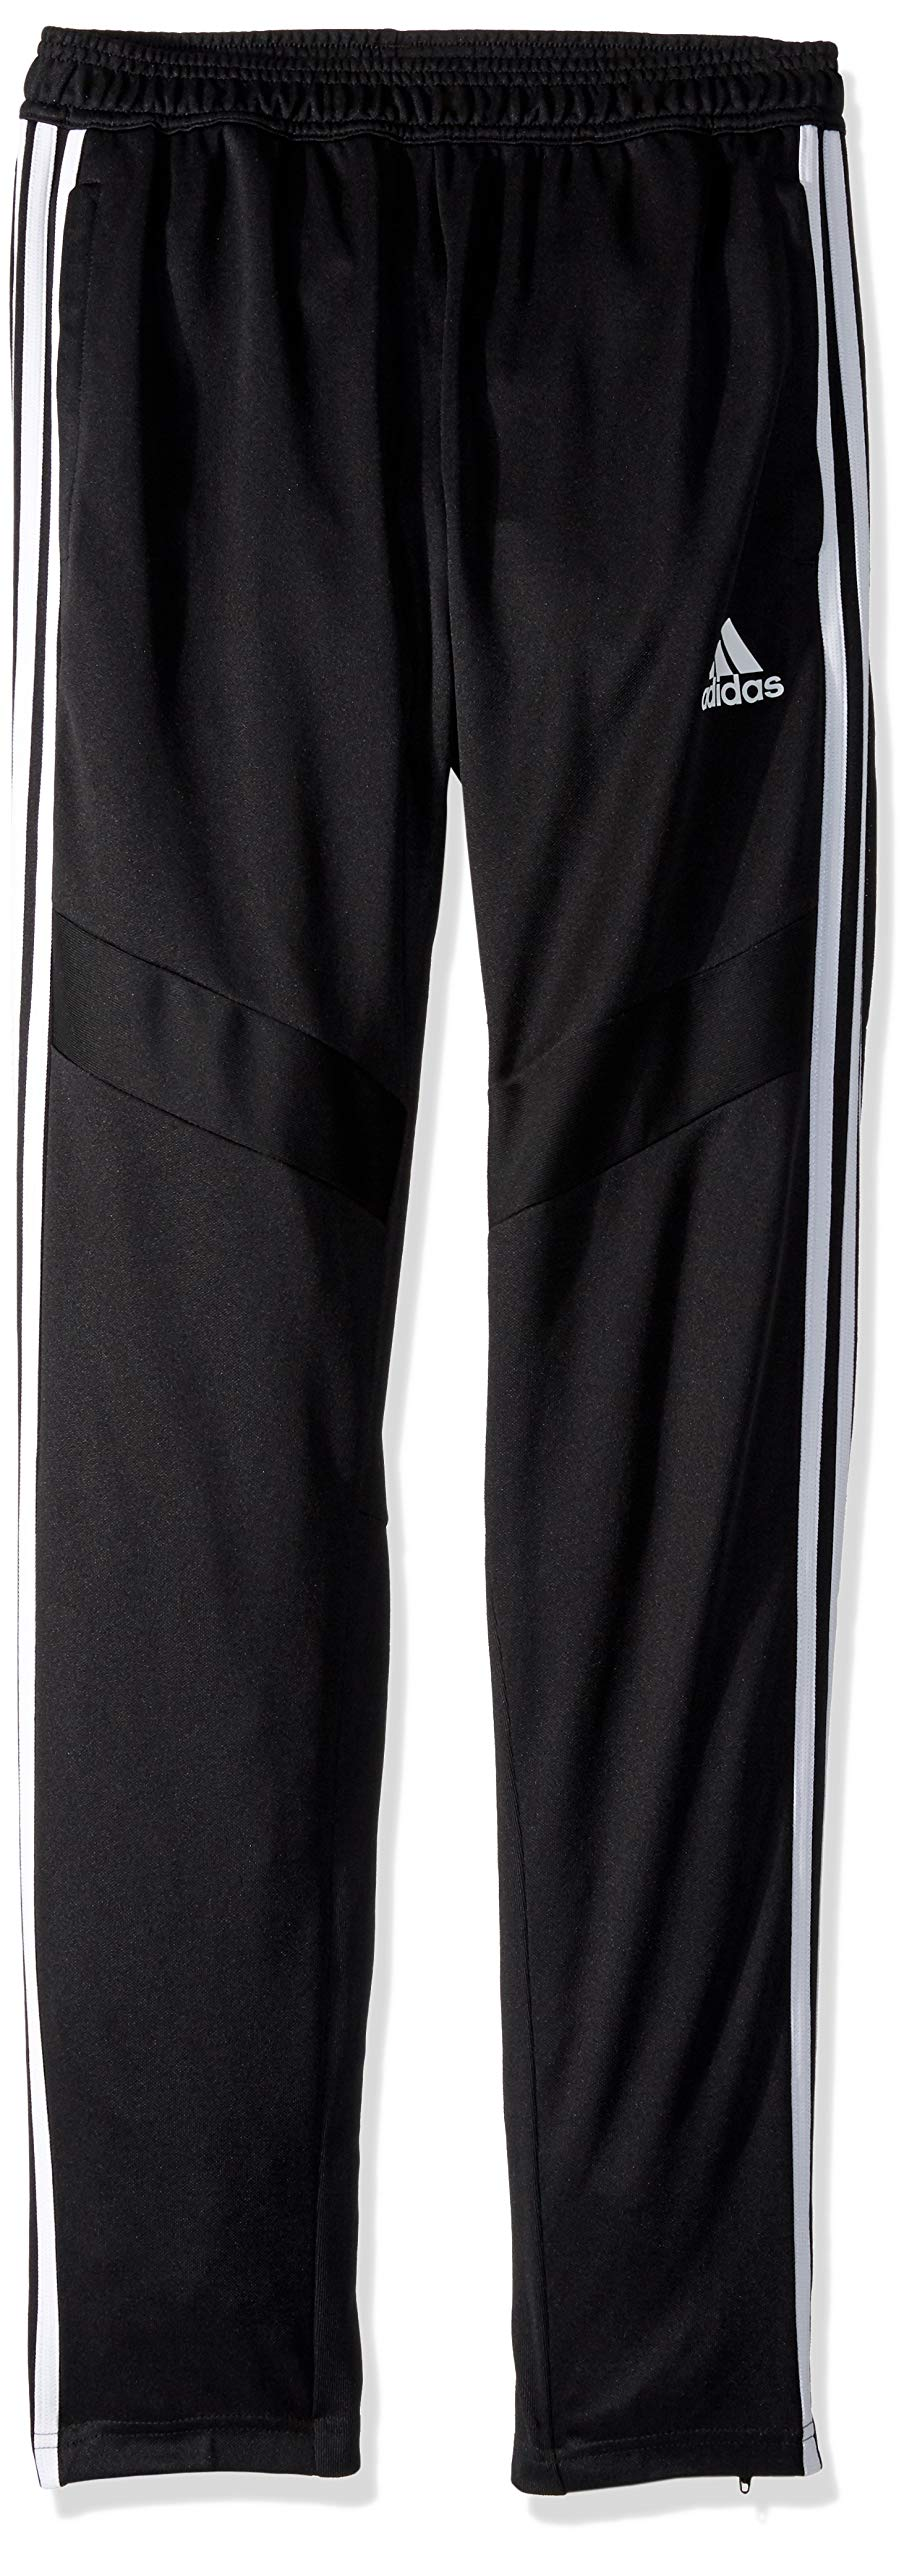 adidas Youth Tiro19 Youth Training Pants, Black/White, XX-Small